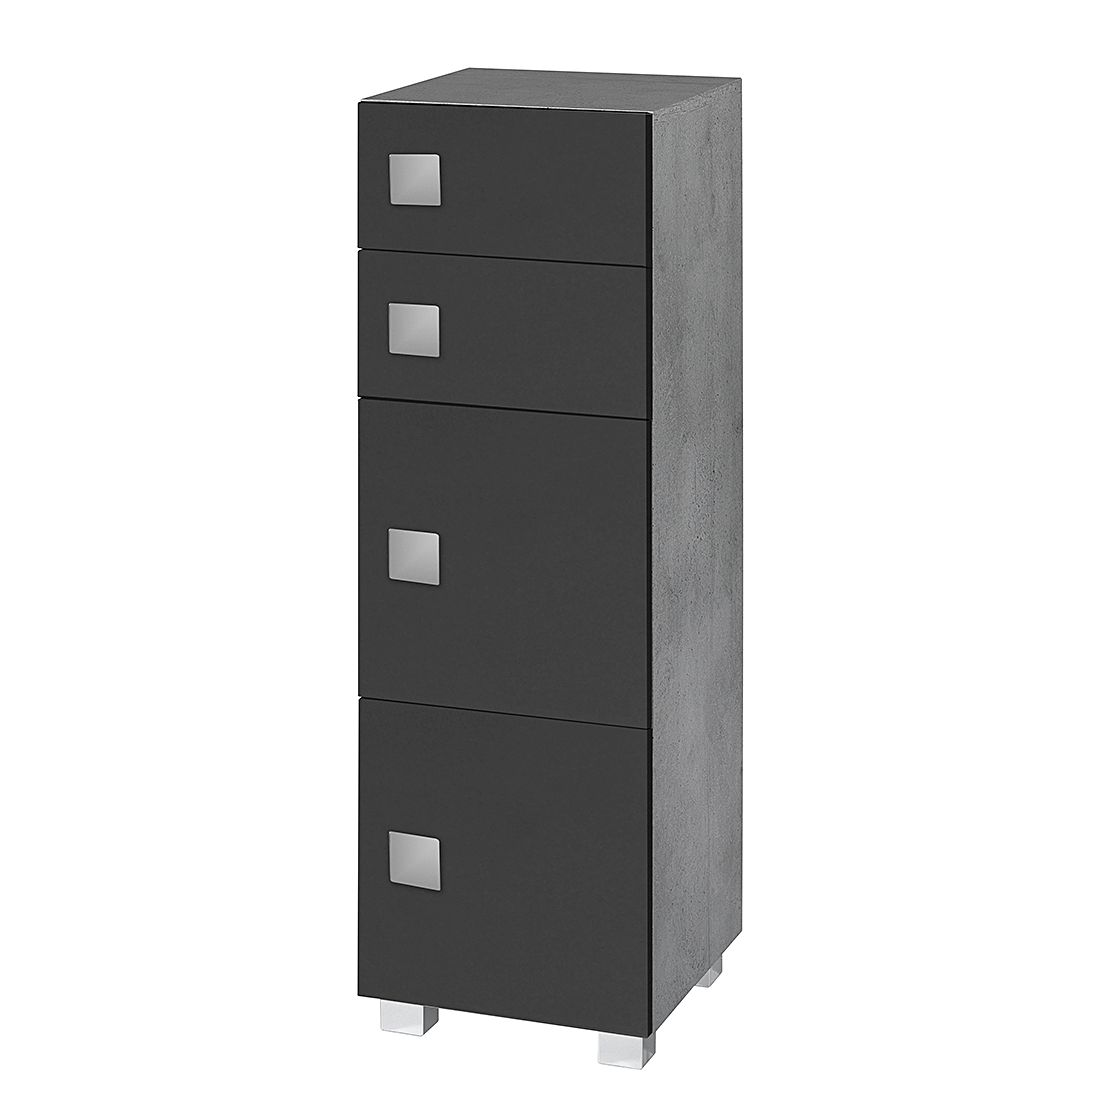 unterschrank genf schwarz steingrau badschrank waschbecken badschrank badm bel ebay. Black Bedroom Furniture Sets. Home Design Ideas